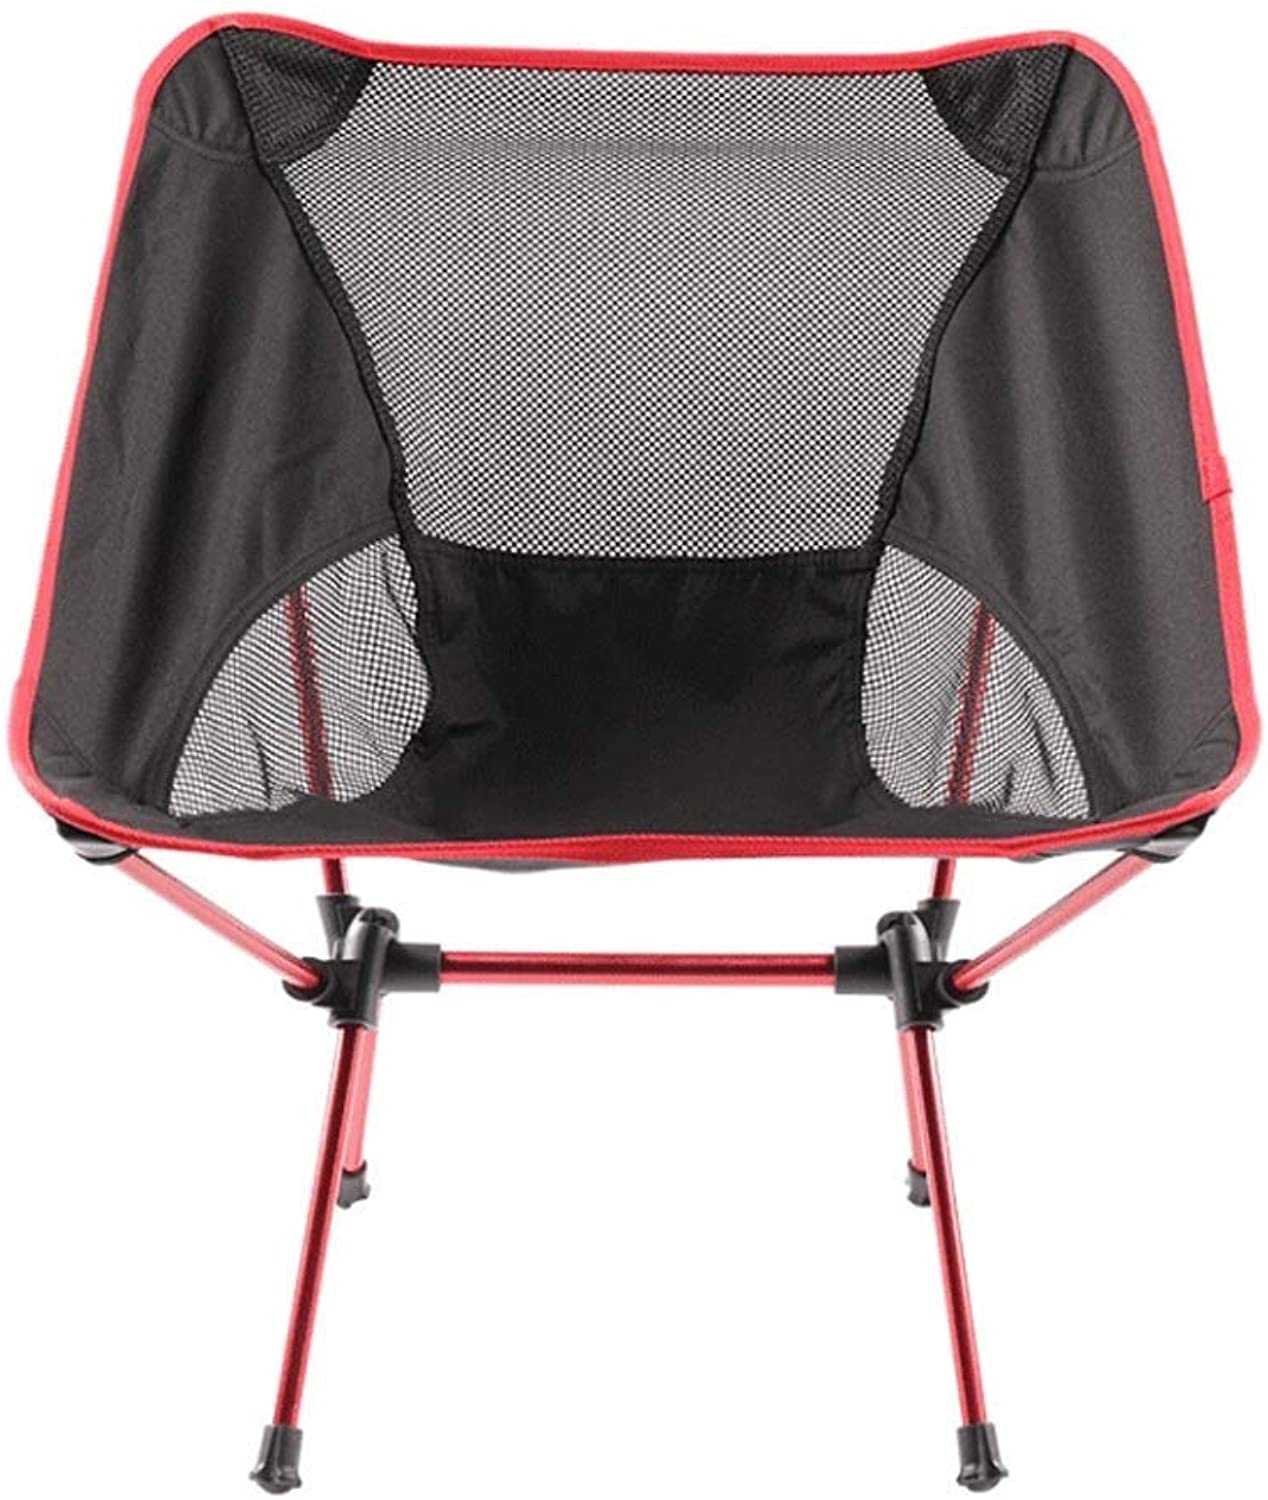 Camping Chairs Lightweight Breathable Folding Compact Portable Moon Chair Festival Beach Fishing Seat,Red